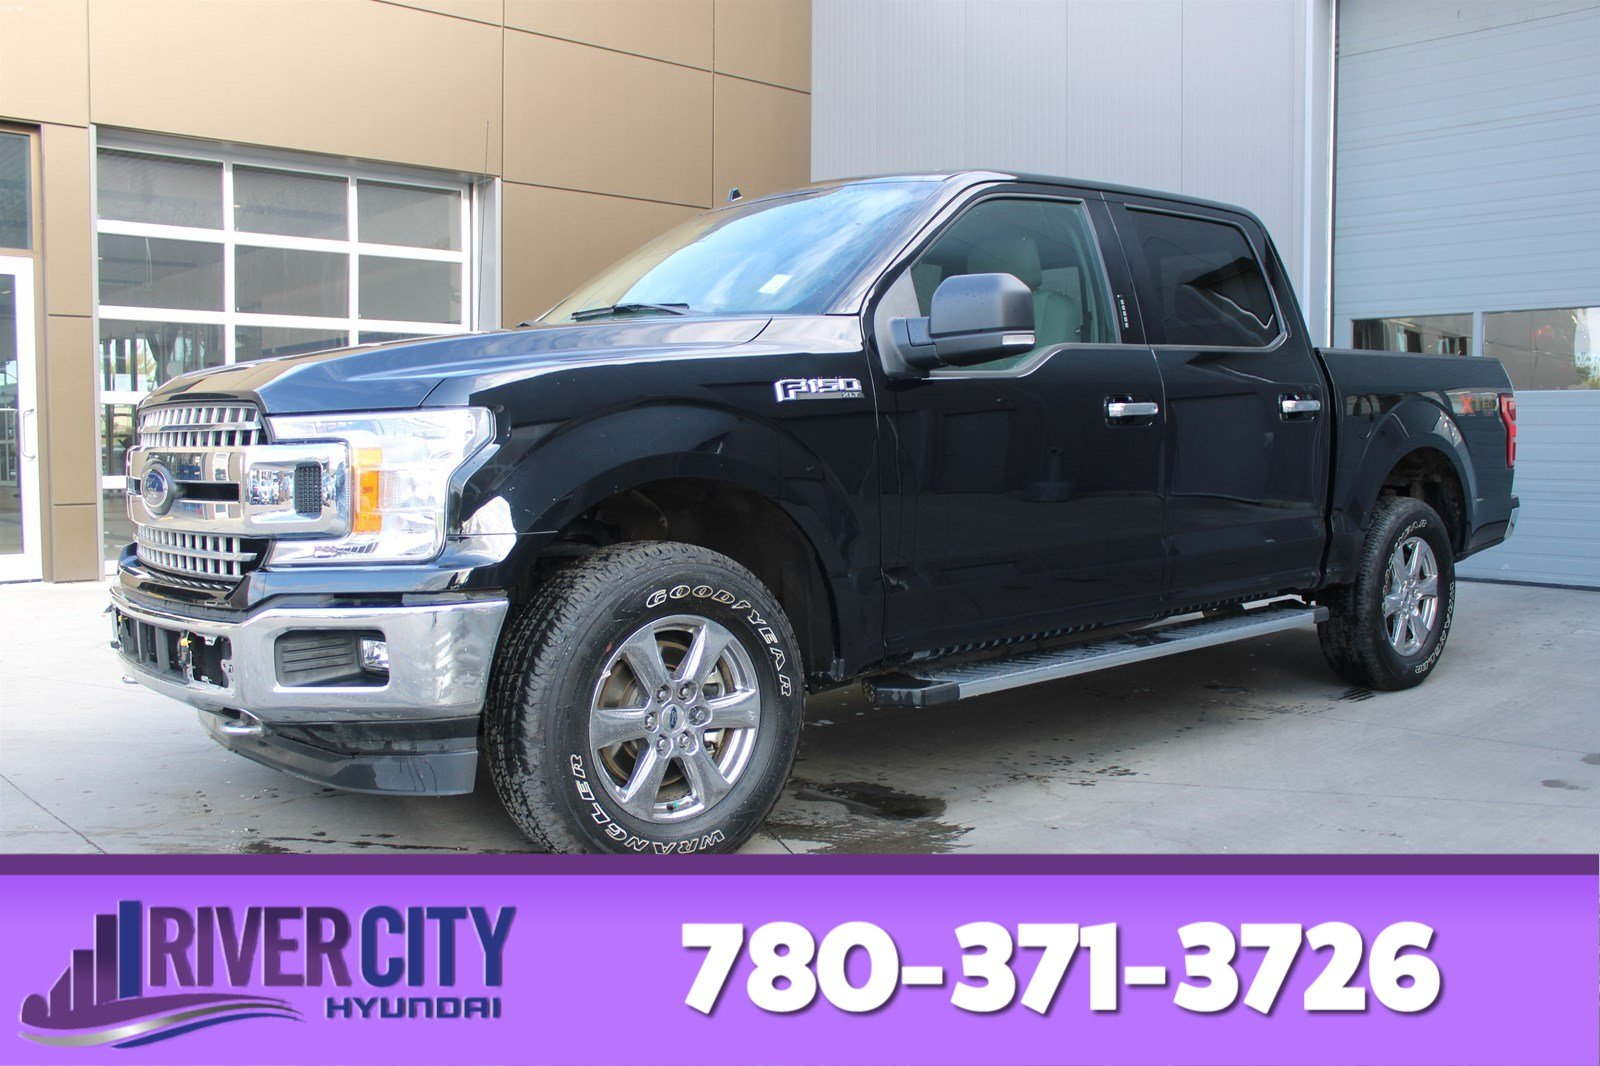 Pre-Owned 2018 Ford F-150 4X4 SUPERCREW XTR Navigation (GPS), Heated Seats, Back-up Cam,